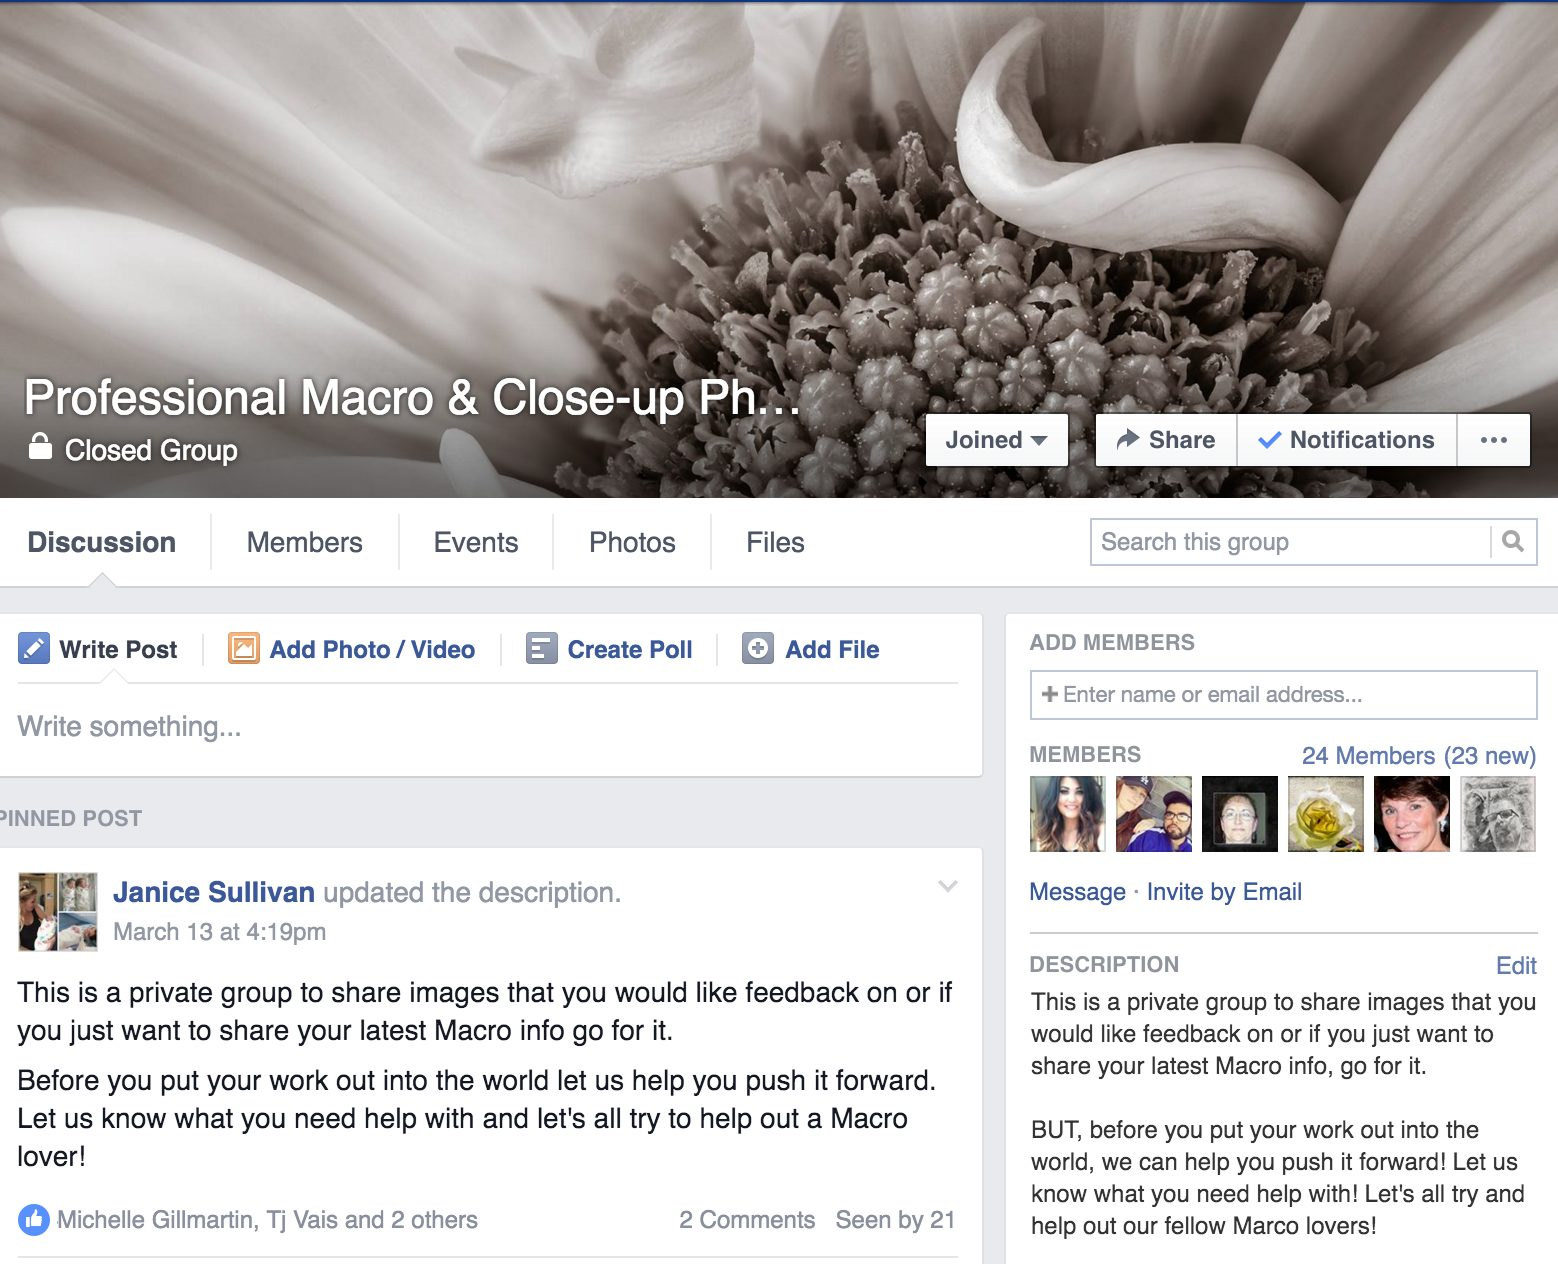 Professional Macro & Close-up Photography Group